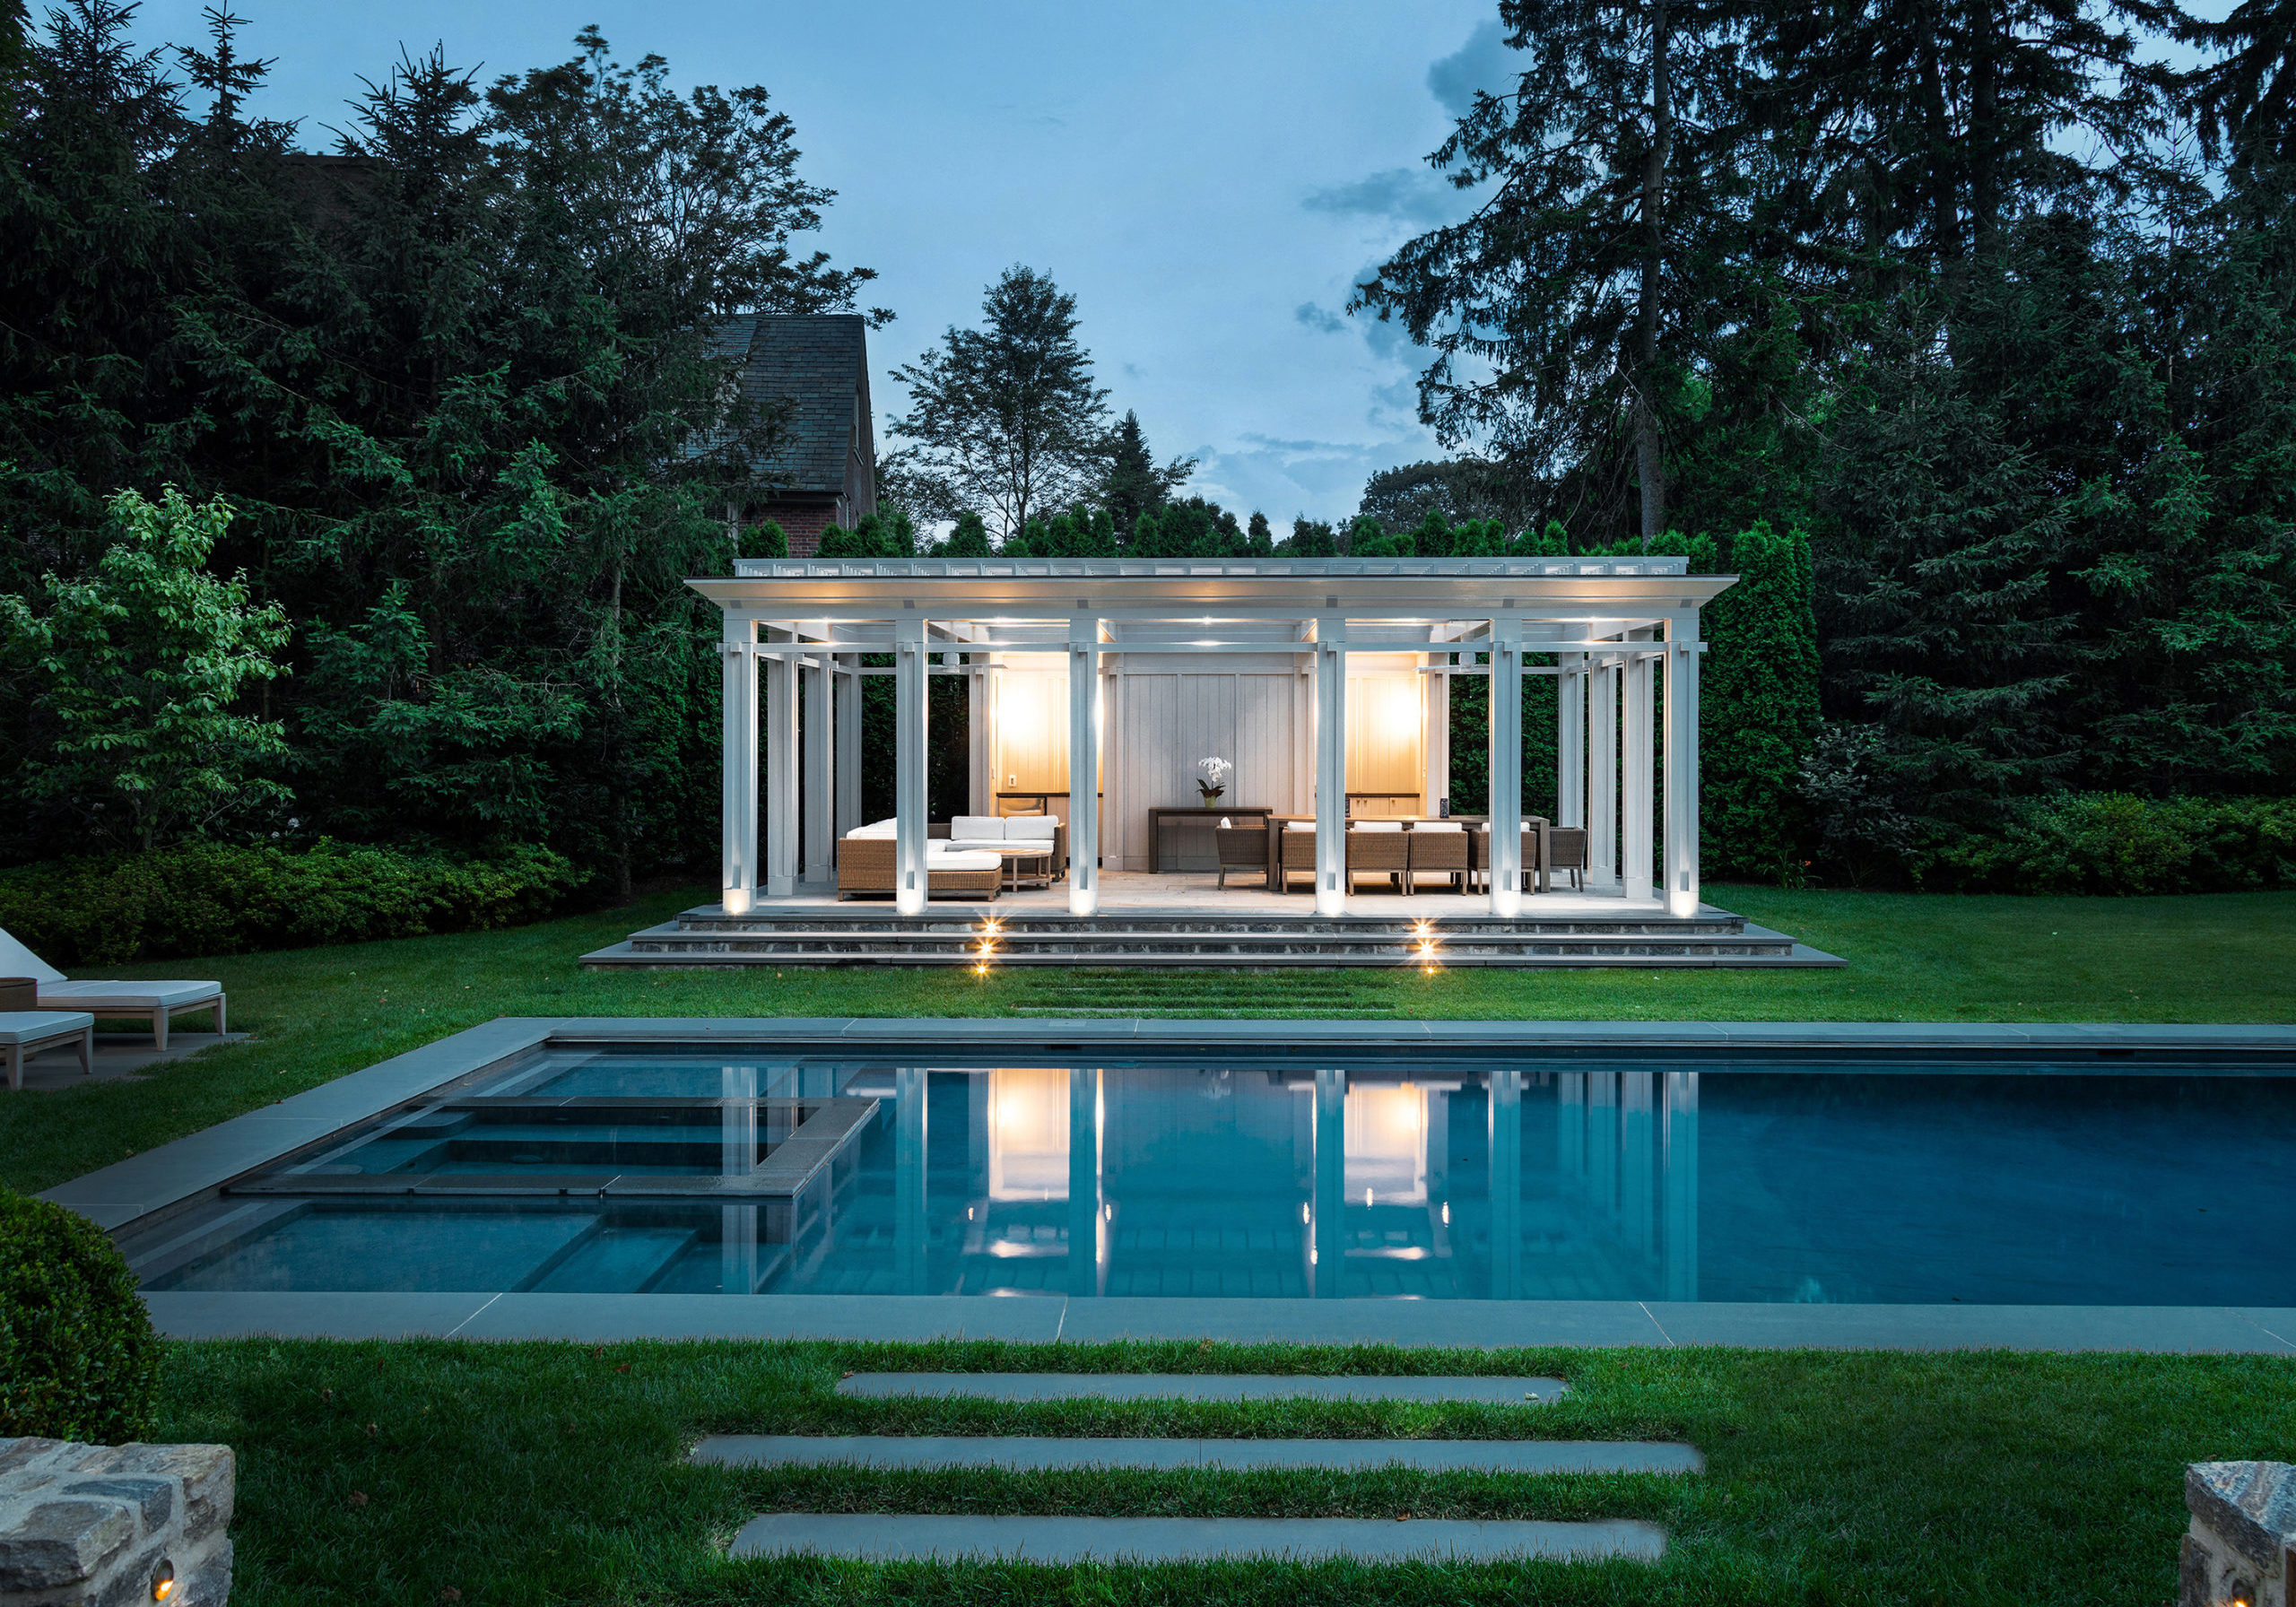 Scarsdale Residence, Location: Scarsdale NY, Architect: Saniee Architects